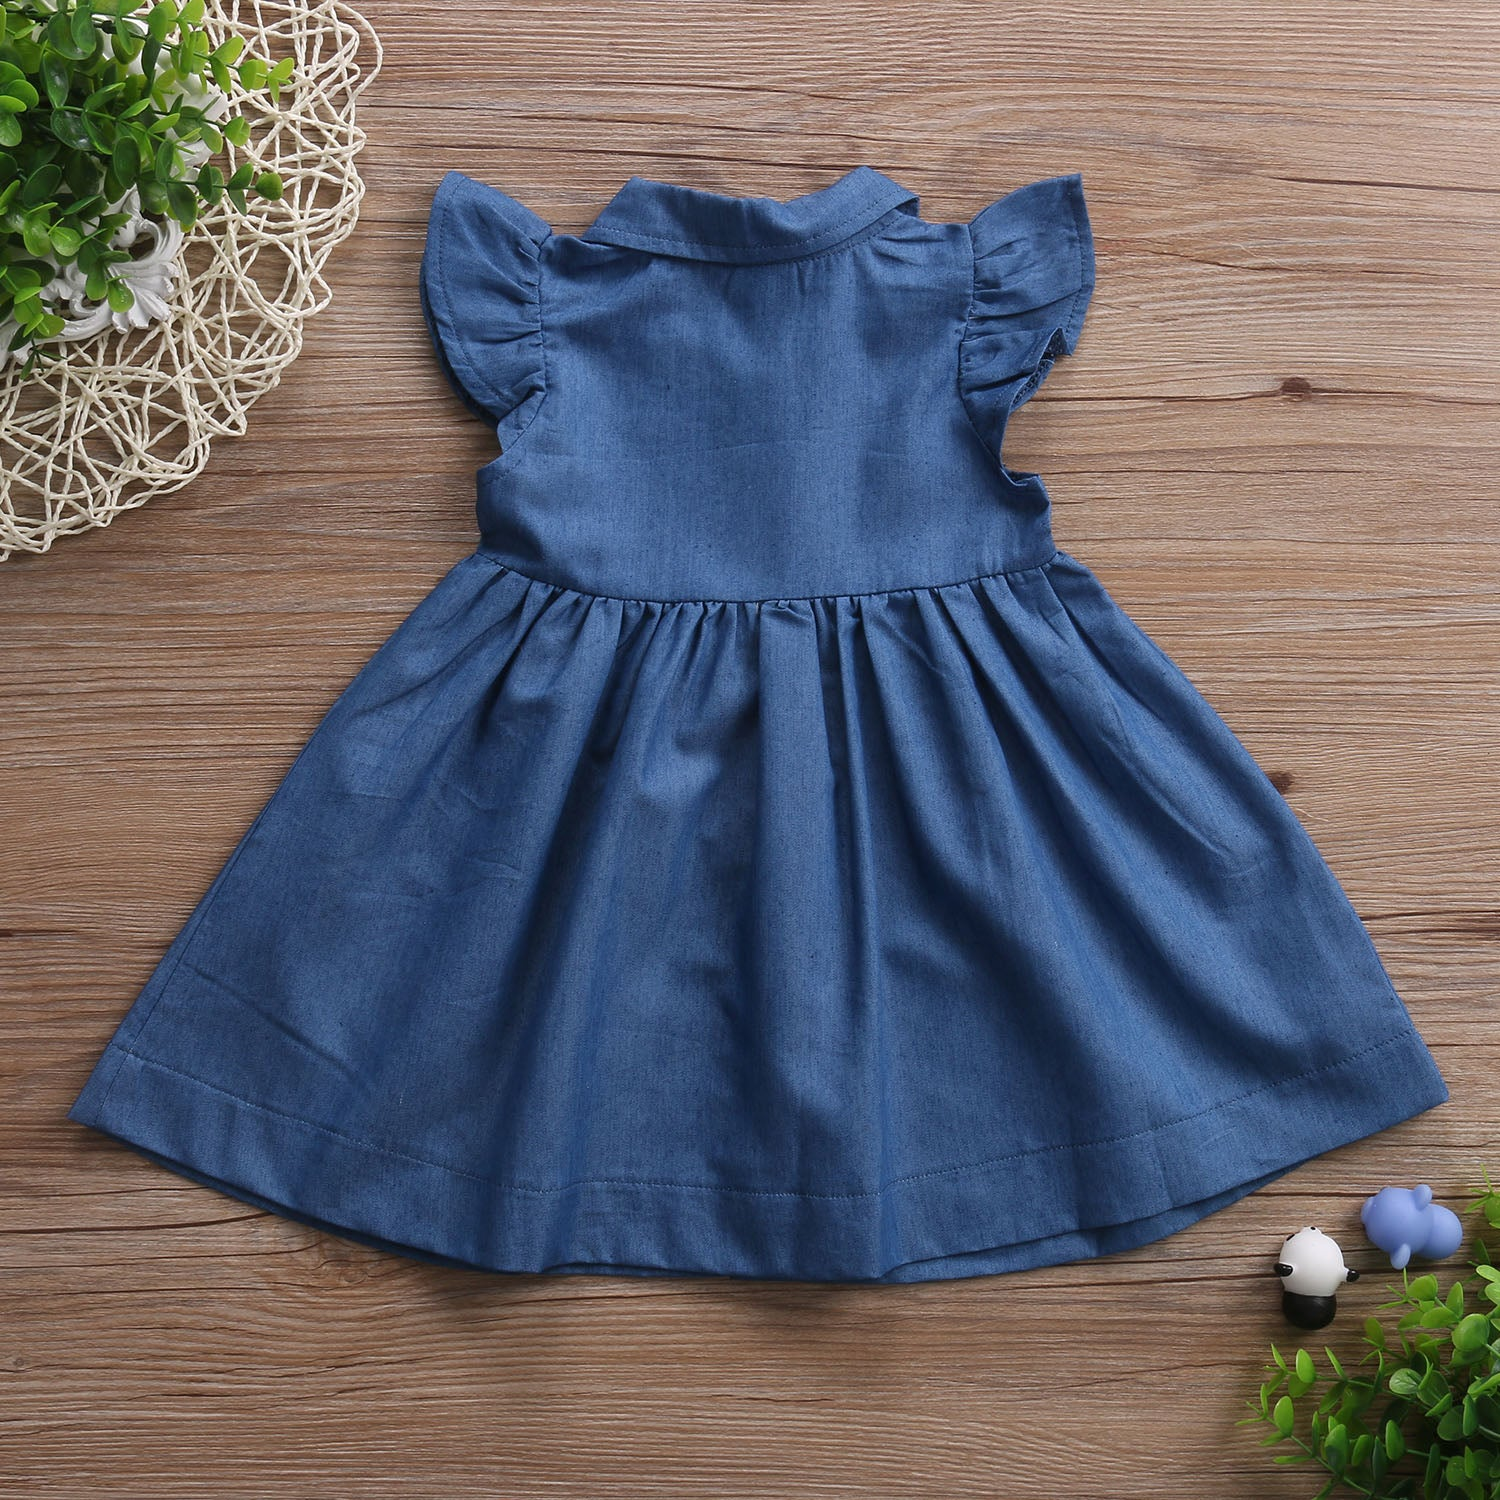 4dc5225f28 Kid Girls Dresses Toddler Denim Single-breasted Dresses Clothes Summer Ruffle  Sleeve Outfits Short Mini